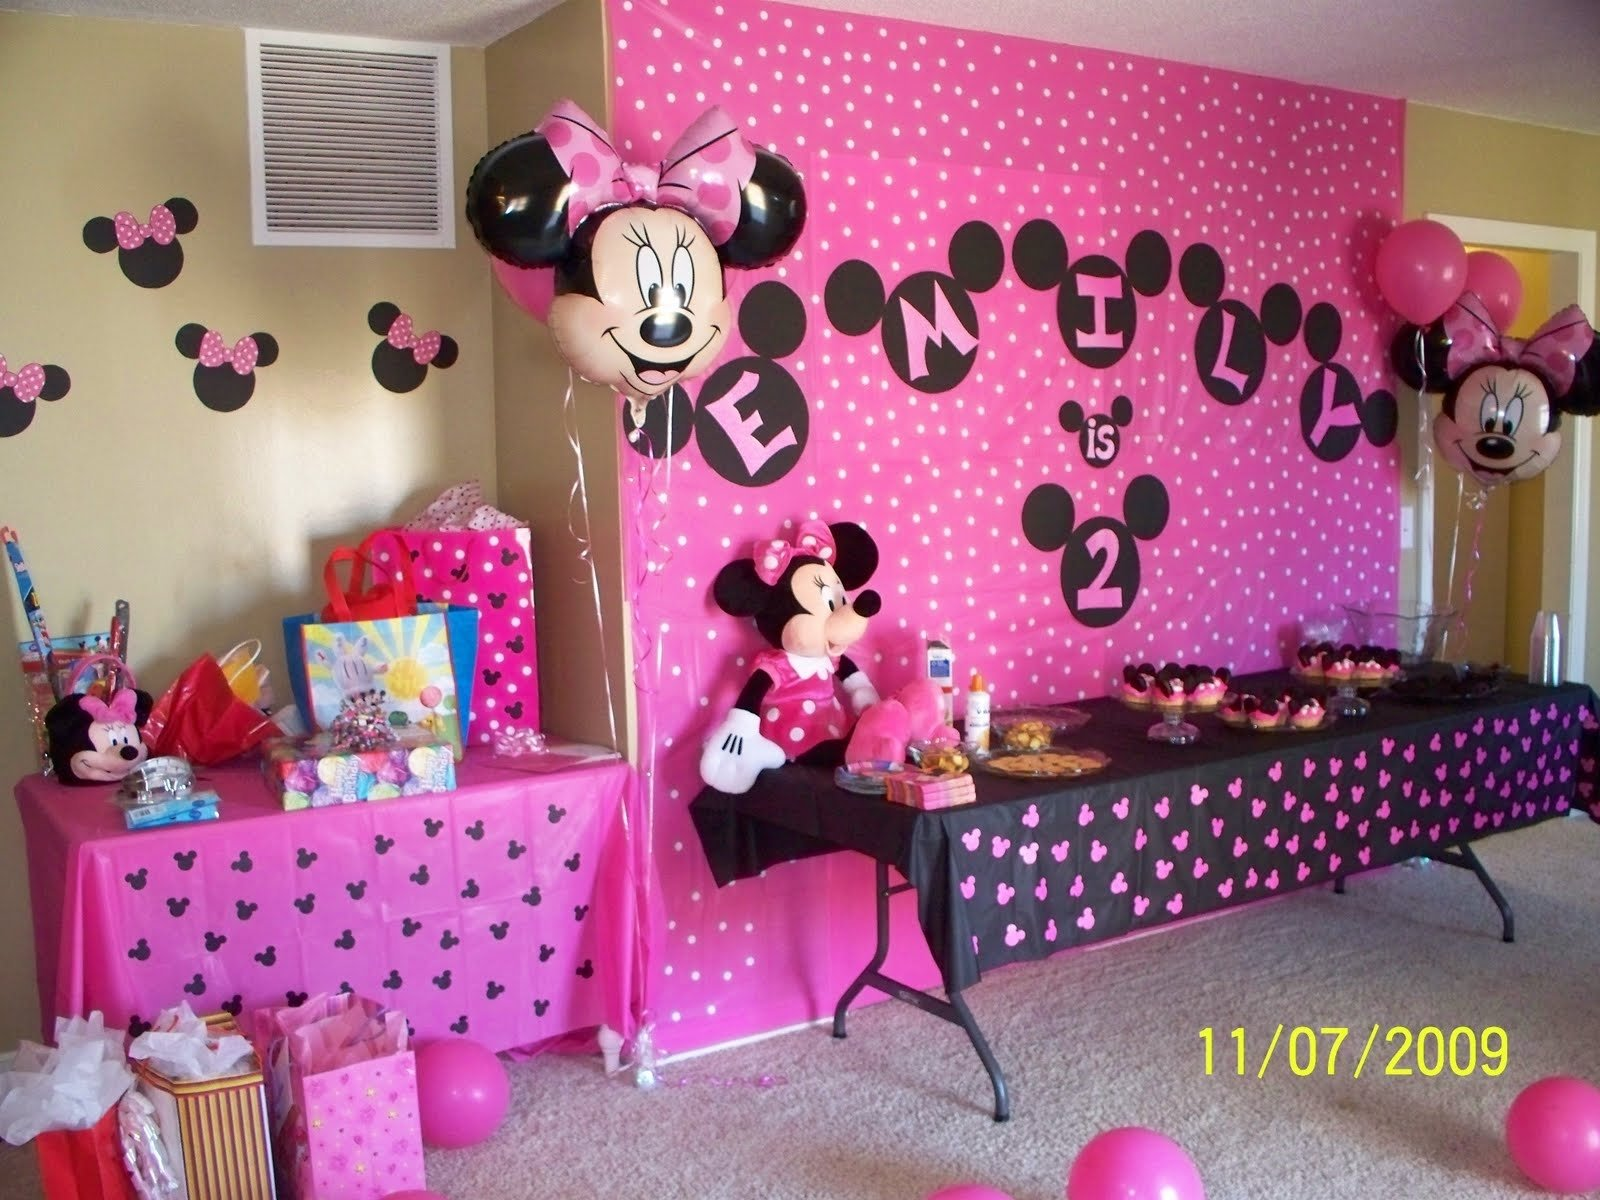 10 Fashionable Baby Minnie Mouse 1St Birthday Party Ideas birthday parties for girls september 2011 2 2020